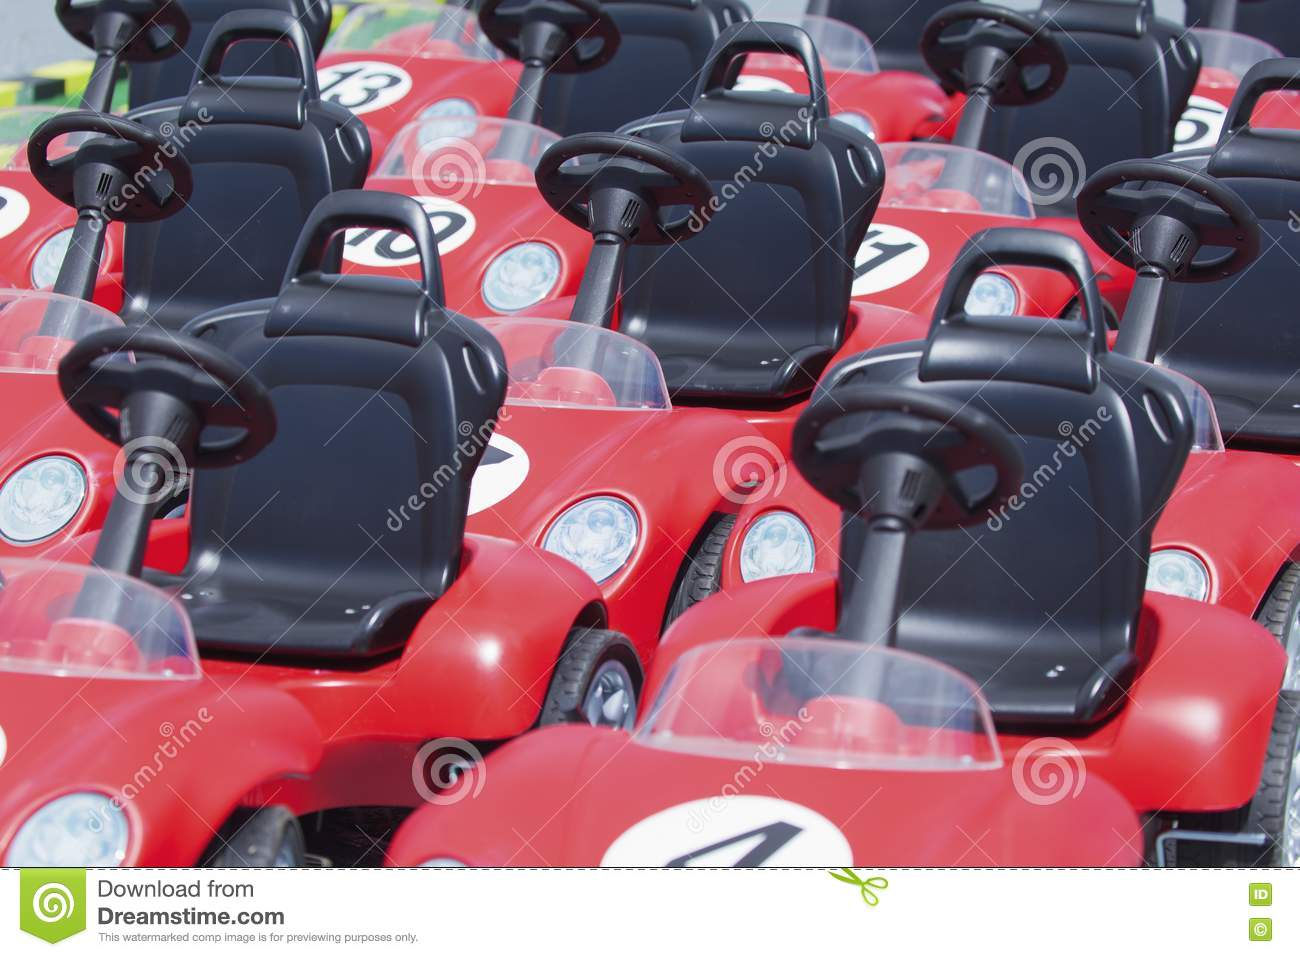 toy race cars for kids royalty free stock photos image 24890338